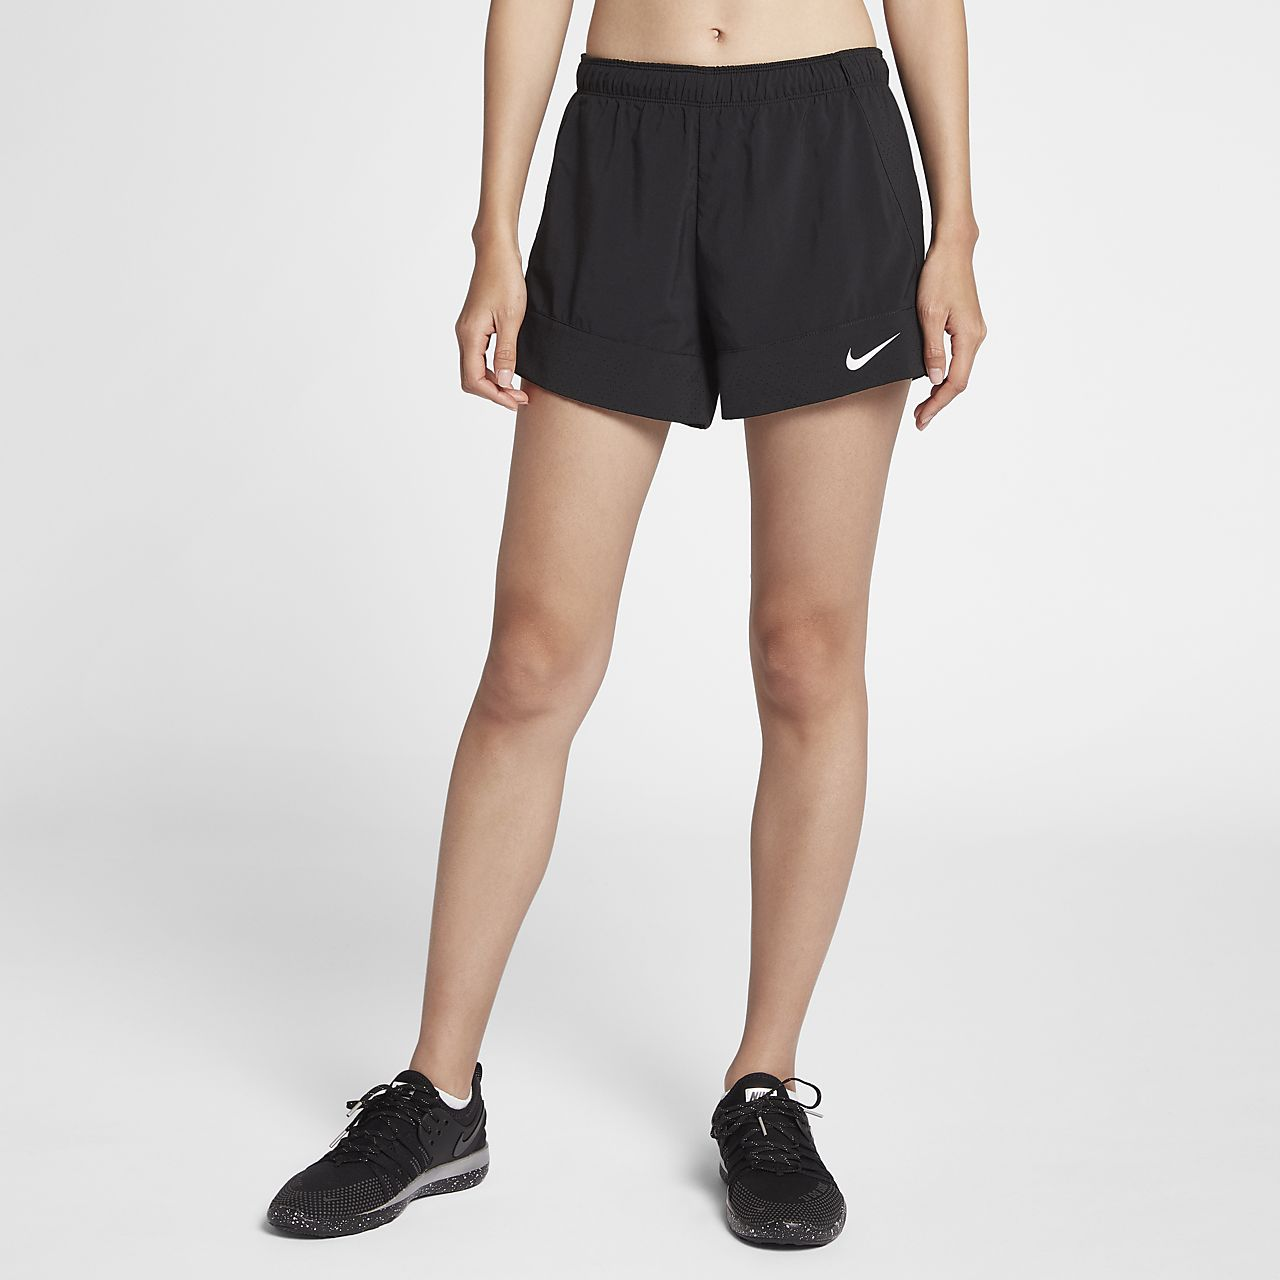 Nike Full Flex 2-in-1 2.0 Women/'s Training Shorts S Black Gym Casual Running New